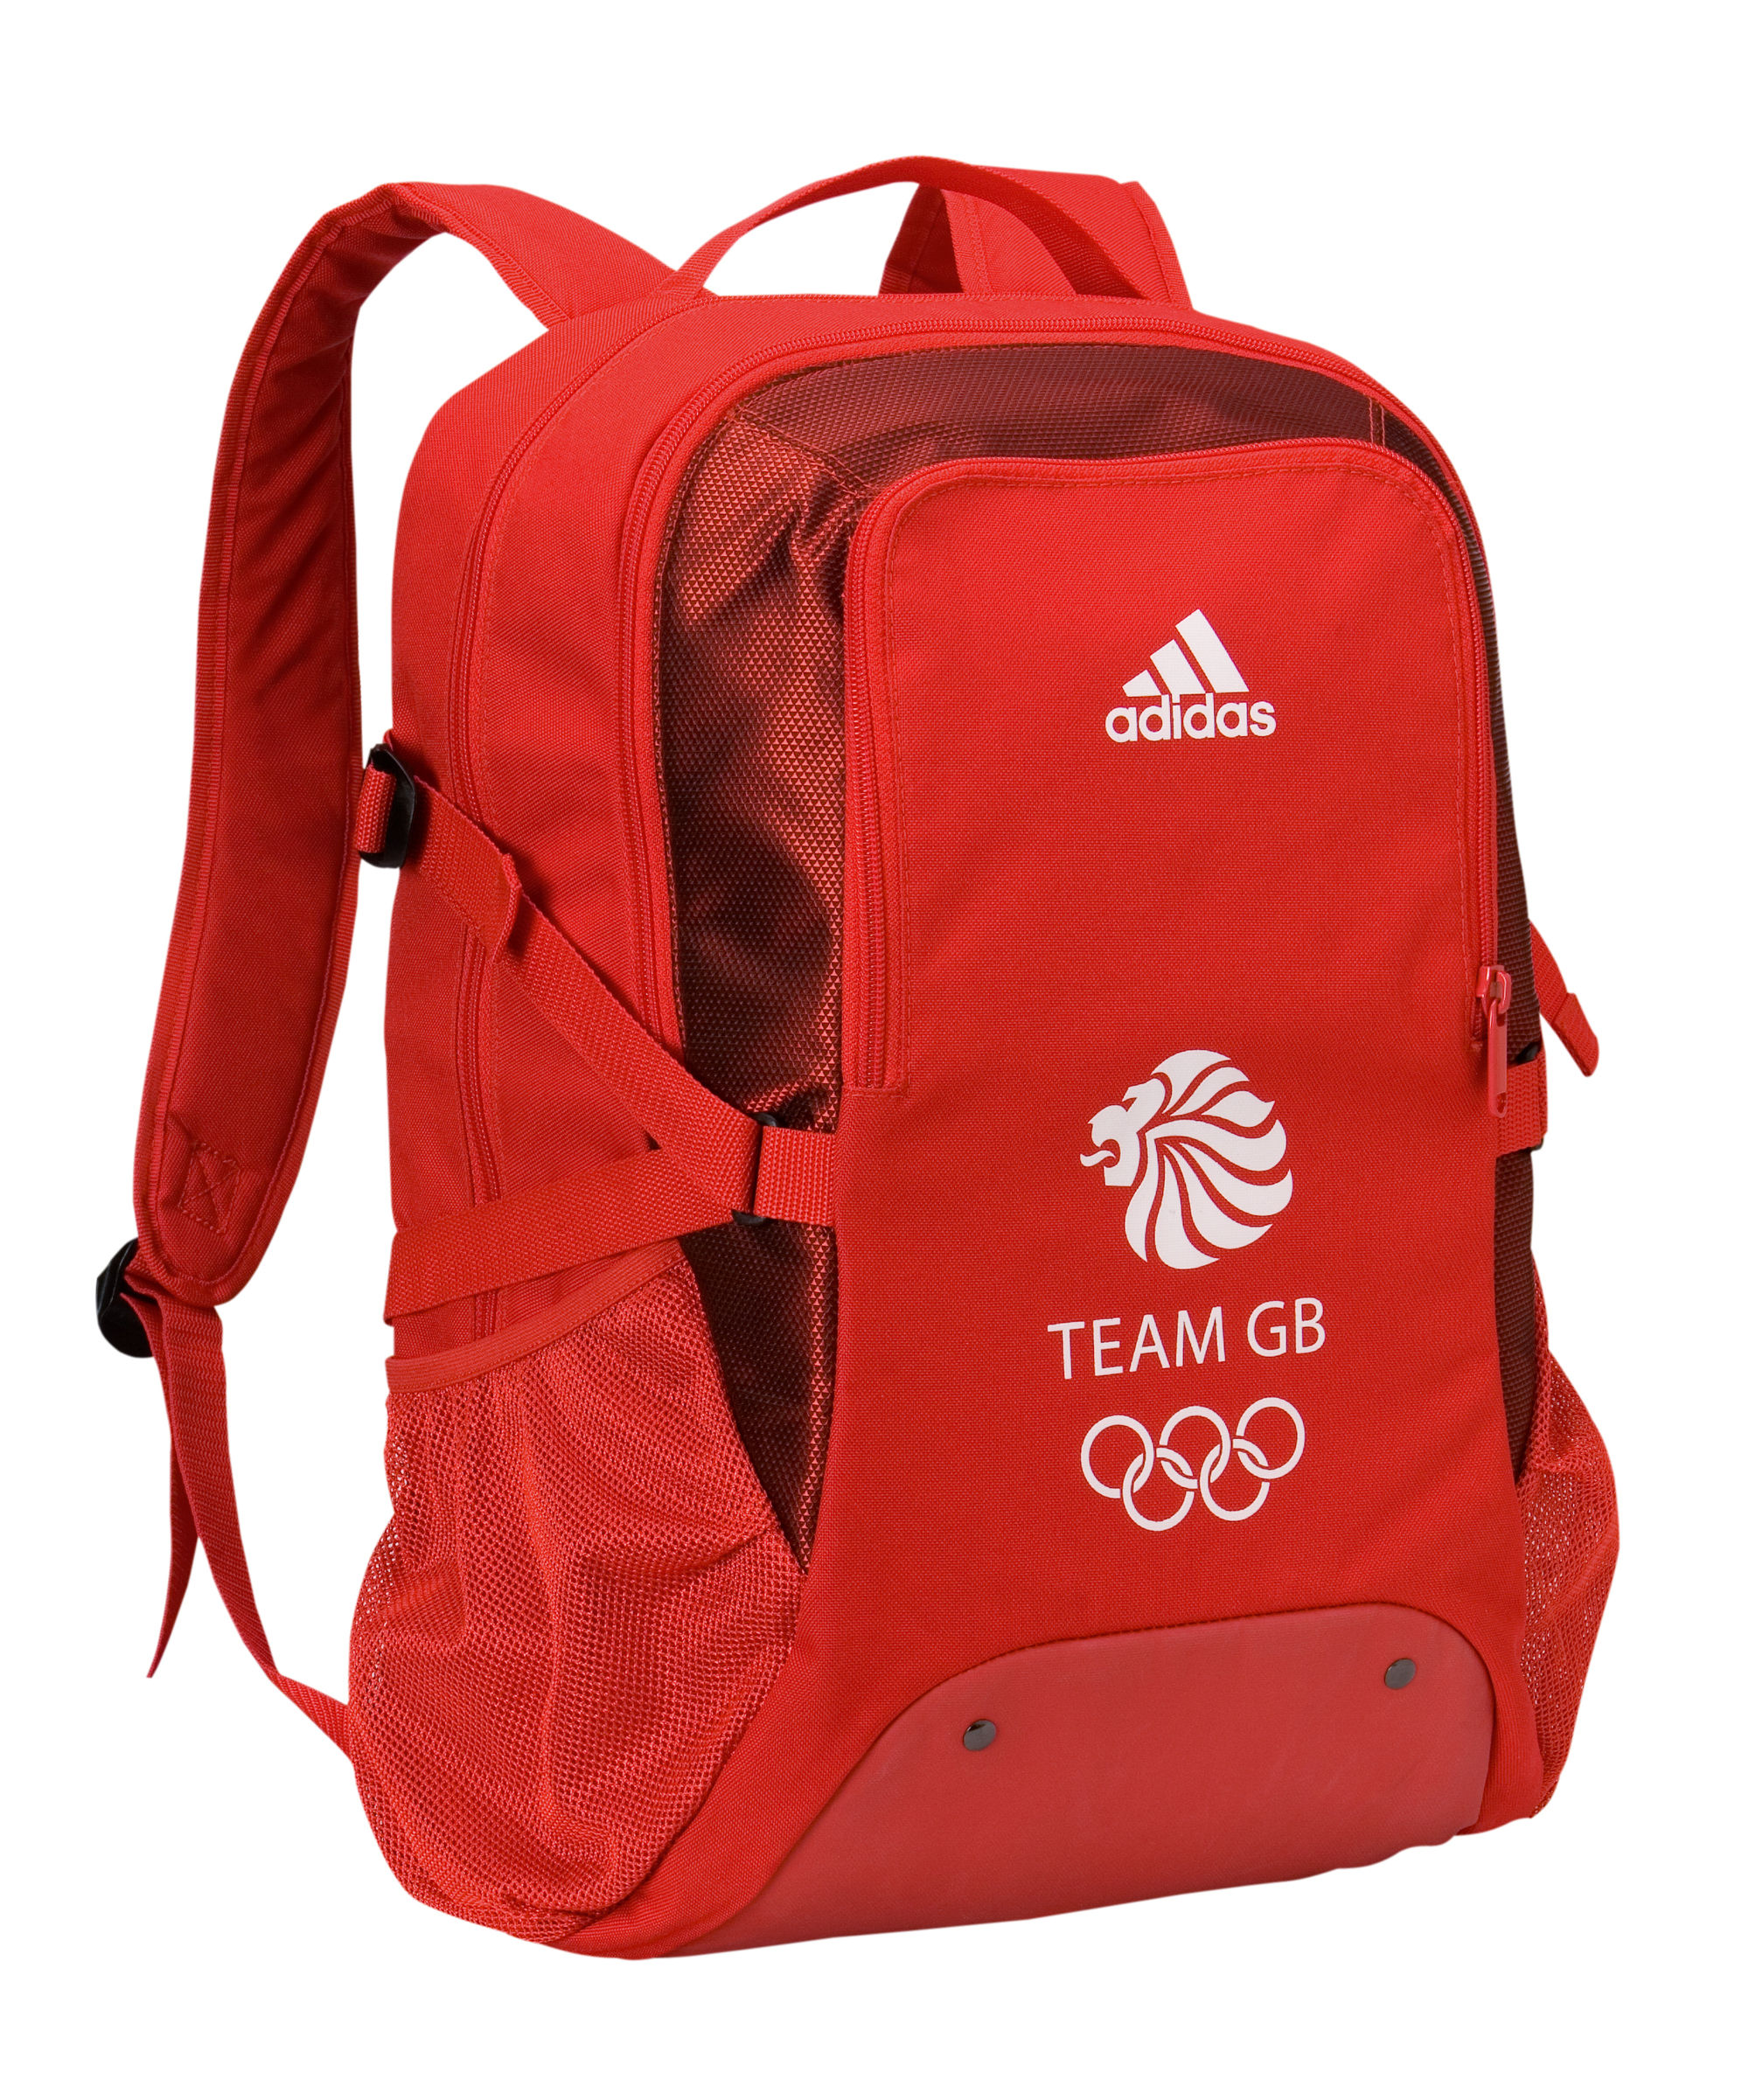 Gb Essential Backpack Team Olympics 2012 London InternalAdidas DYWH29IE